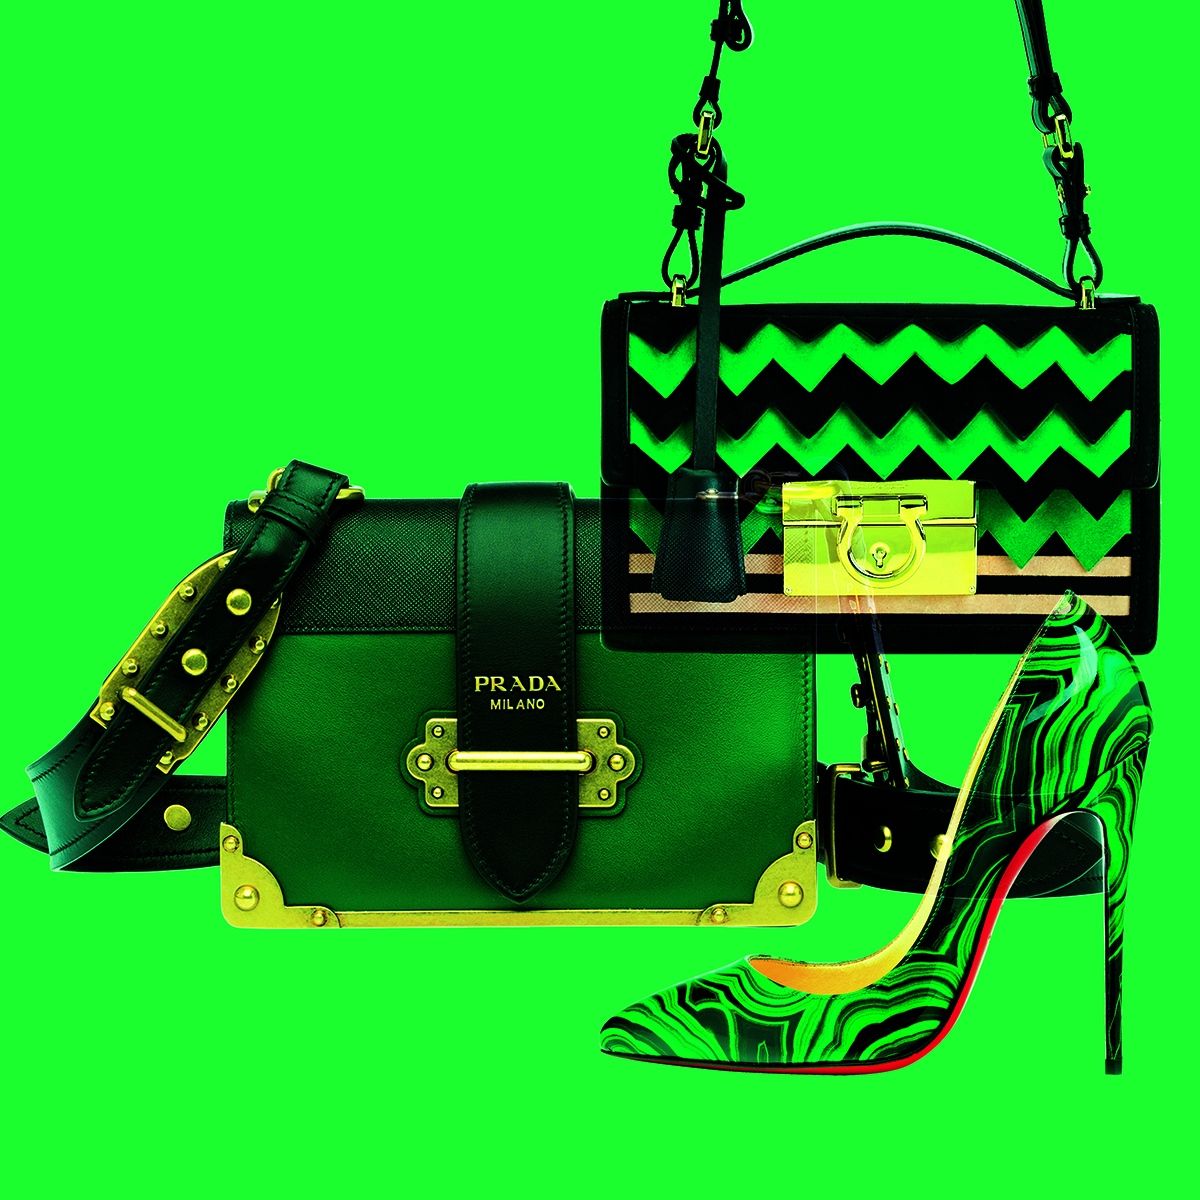 The green and black accessories from Prada, Salvatore Ferragamo and Christian Louboutin